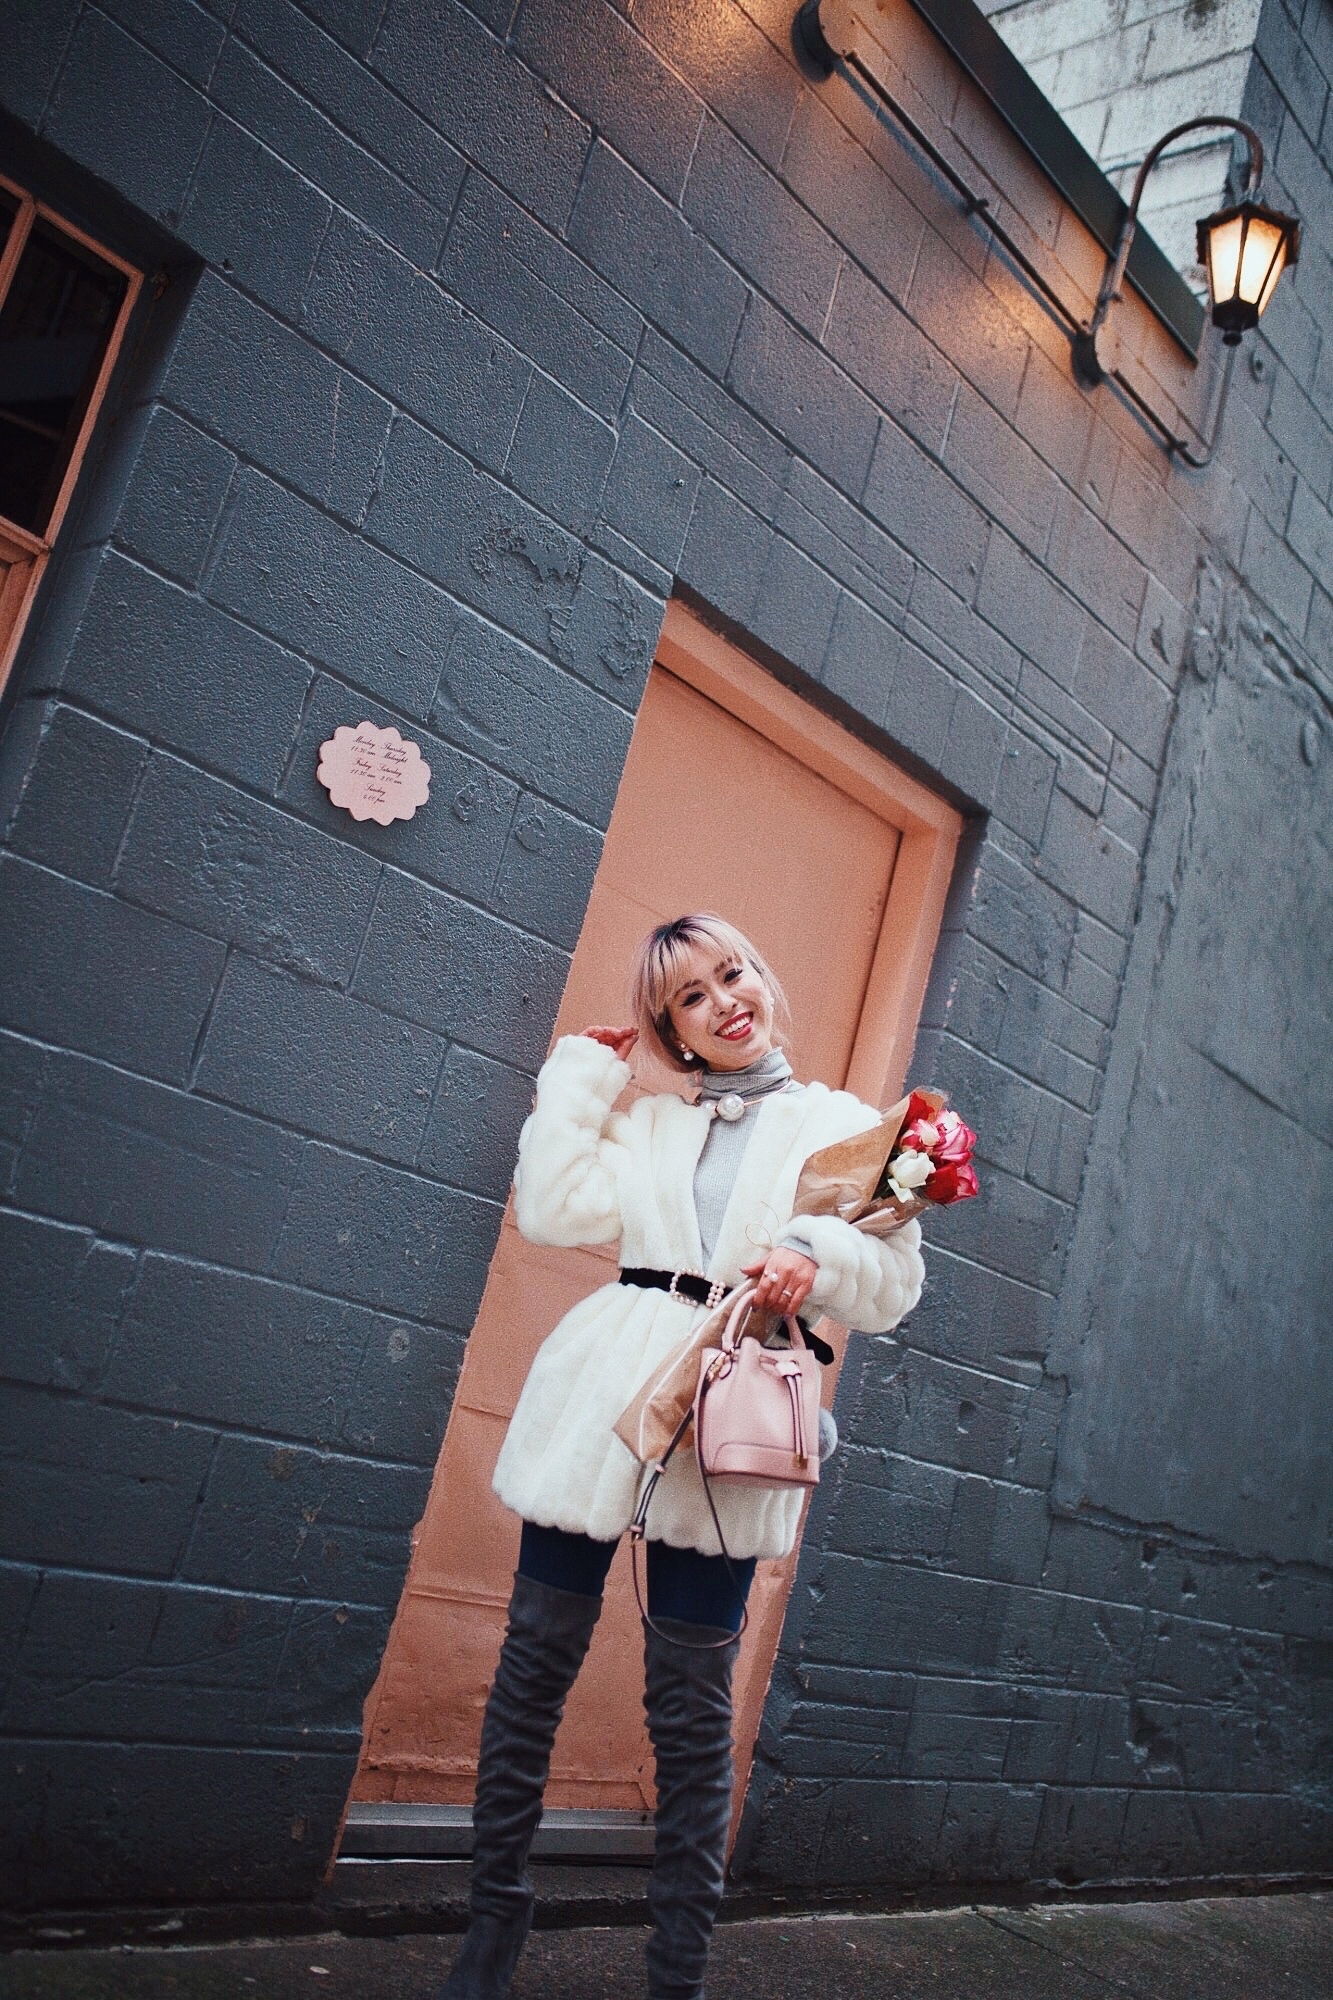 9D75F71B-4CEE-4B01-BDDF-C05FFE35378A.JPGH&M Gray Turtleneck Sweater-ASOS high waisted skinny jean-EGO Grey Over the Knee Boots-While Faux Fur Coat-Forever 21 Pearl Belt & Pink Mini Basket Bag-Chanel Ribbon Hair-Valentine's Day-Rose bouquet-Pink Hair-Japanese-Seattle Style Fashion Blogger-AikA's Love Closet 9